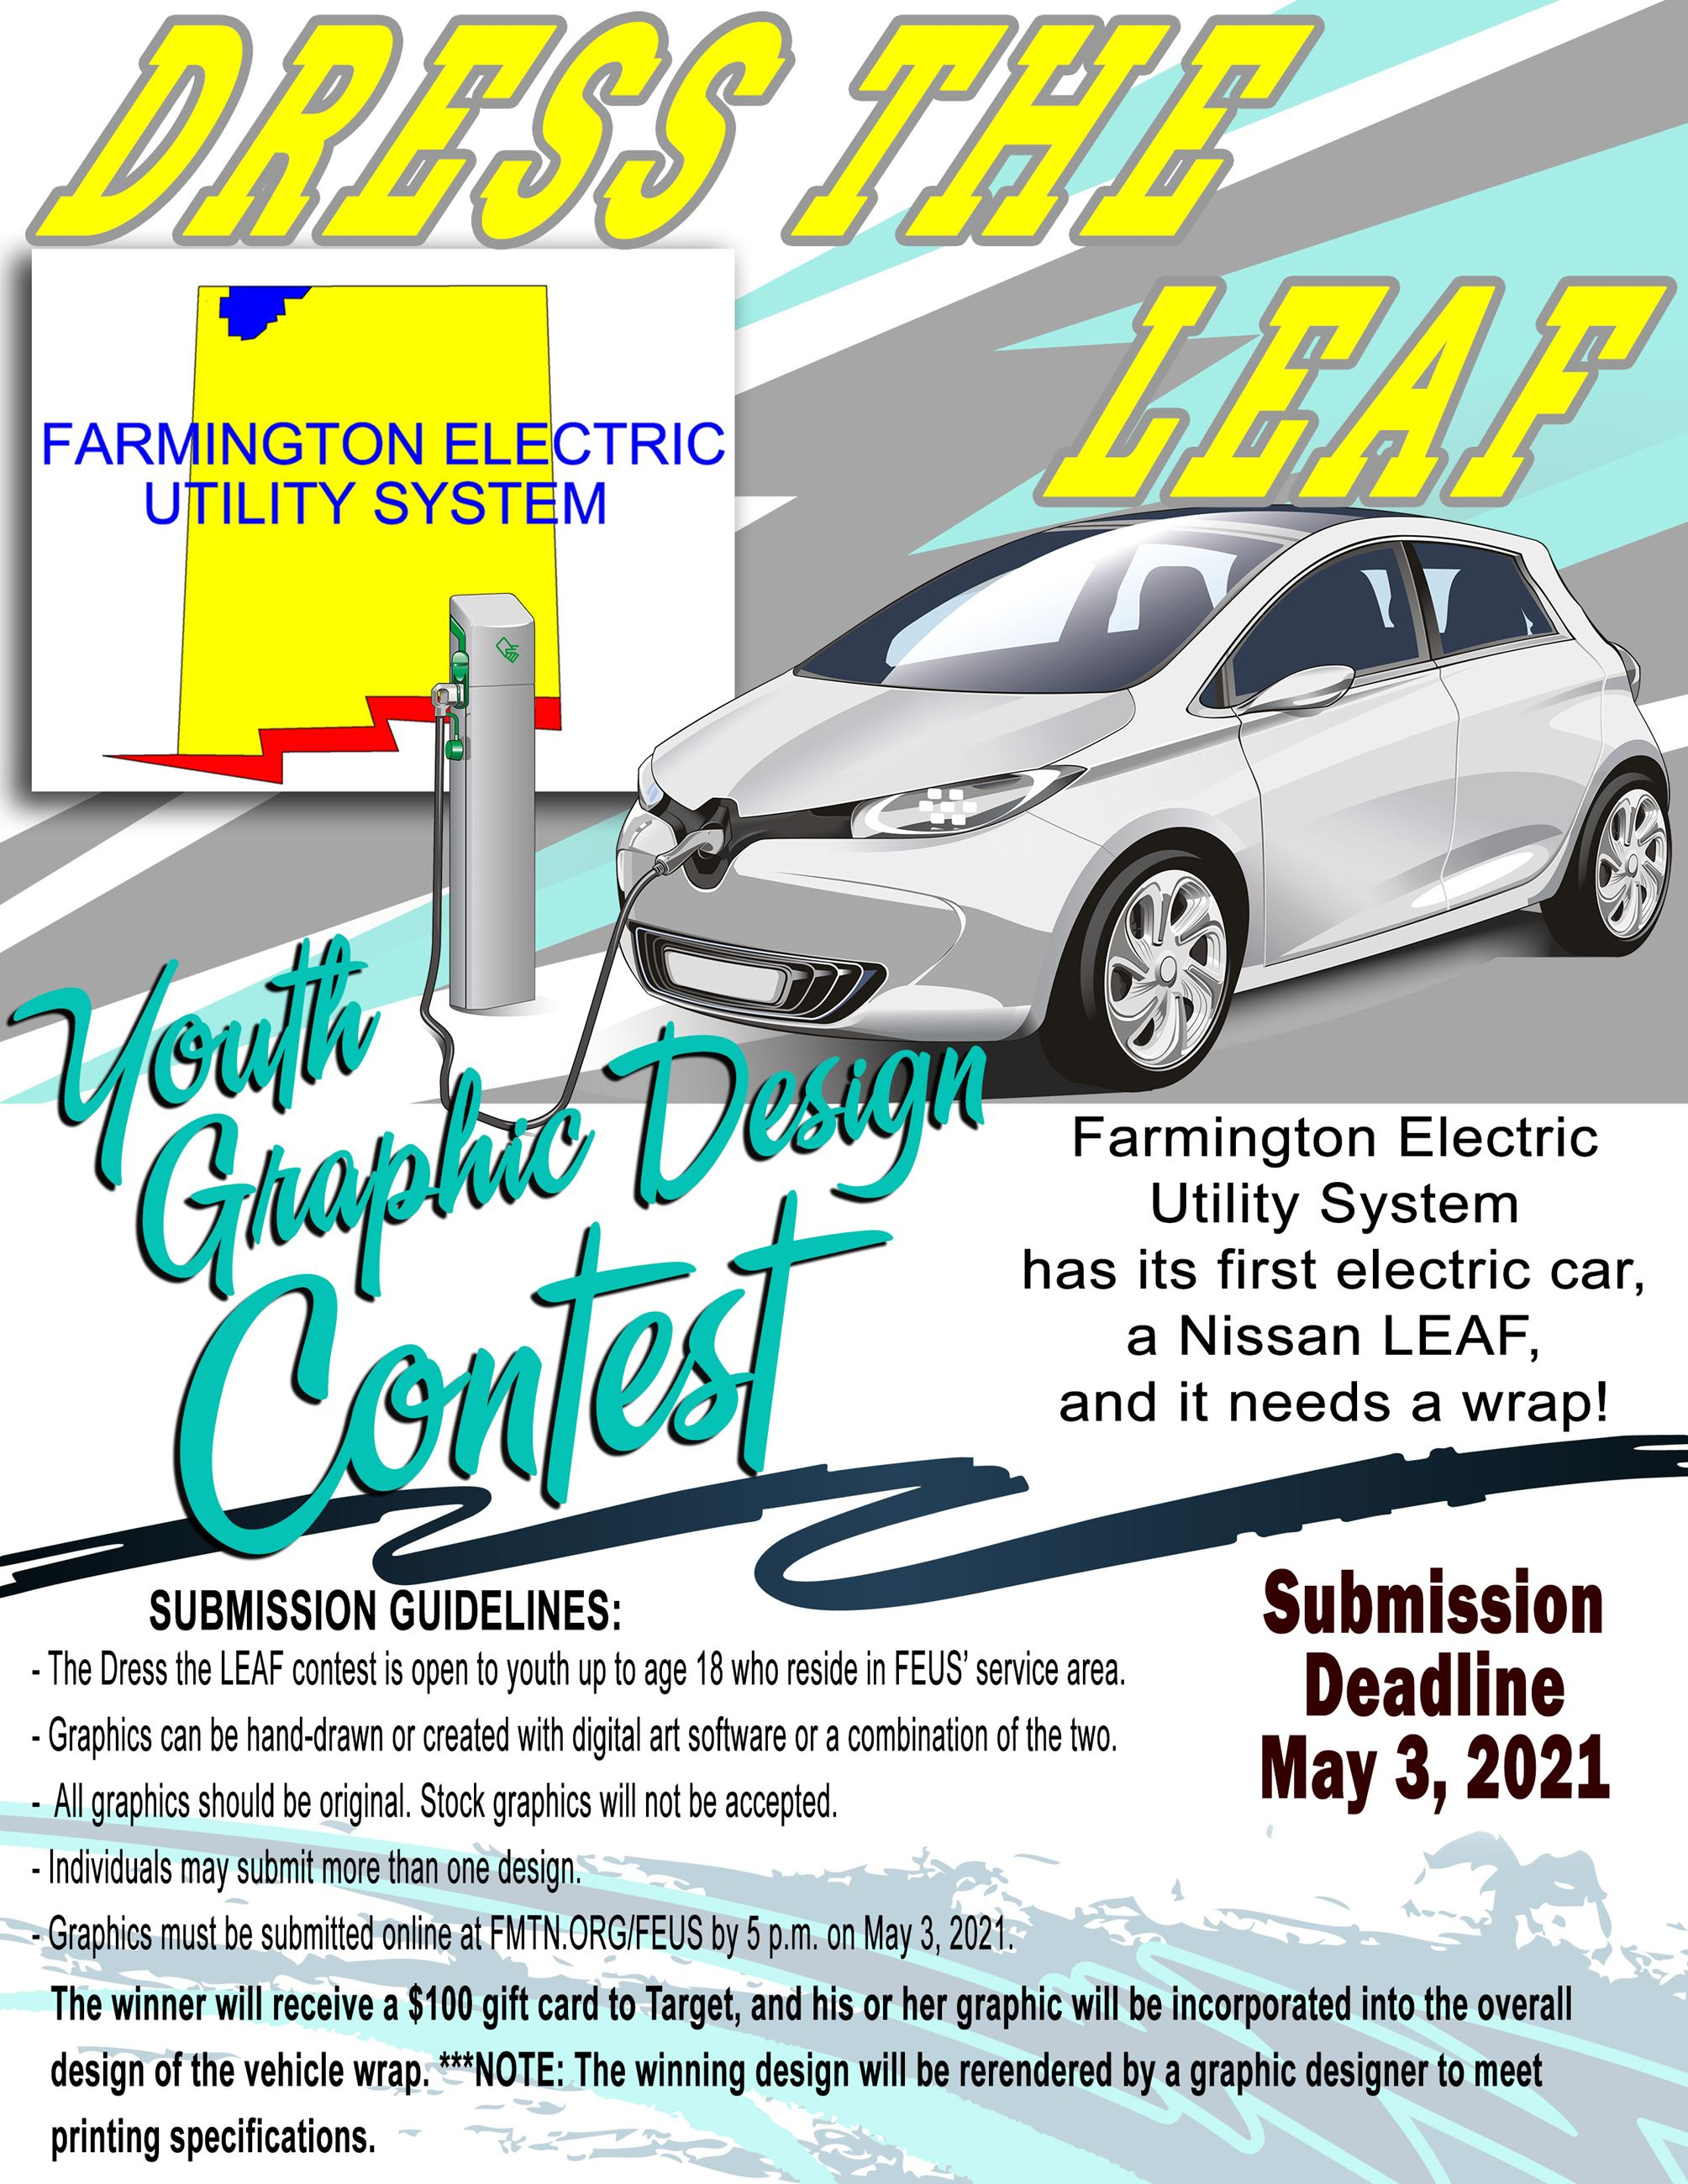 Dress the LEAF Youth Graphic Design Contest